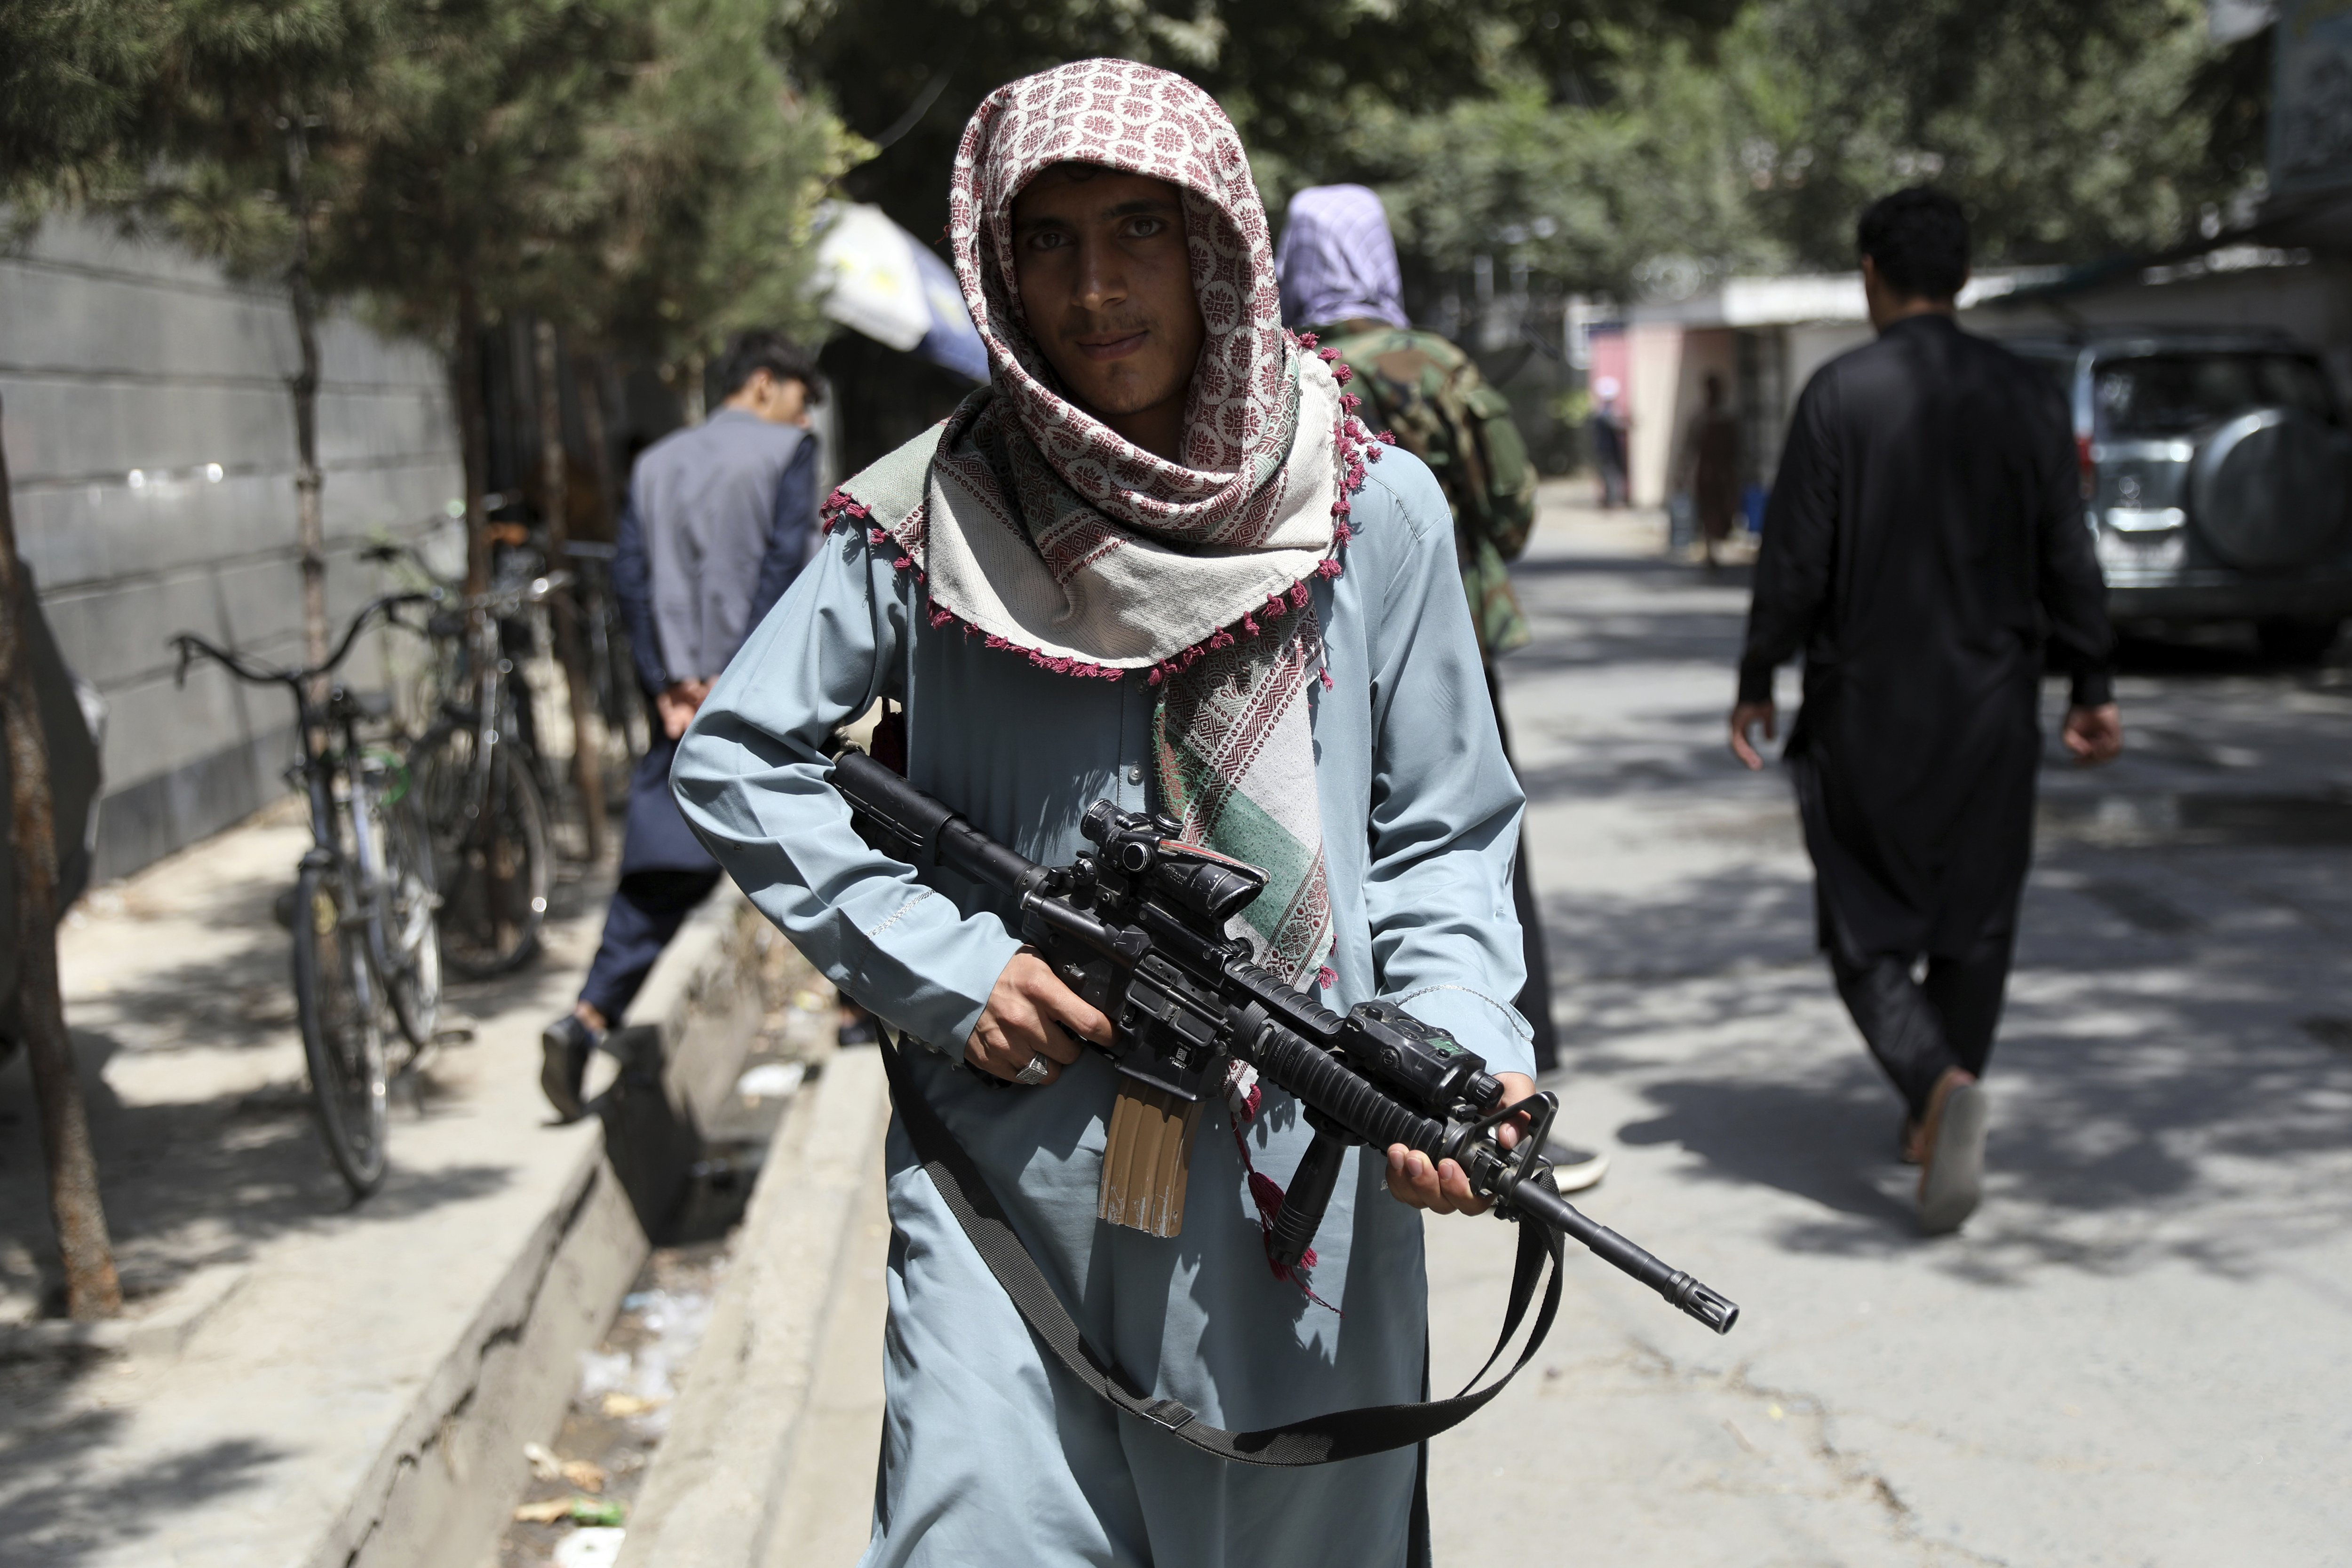 Afghan staff at U.S. Embassy losing faith evacuation efforts, diplomatic cable says